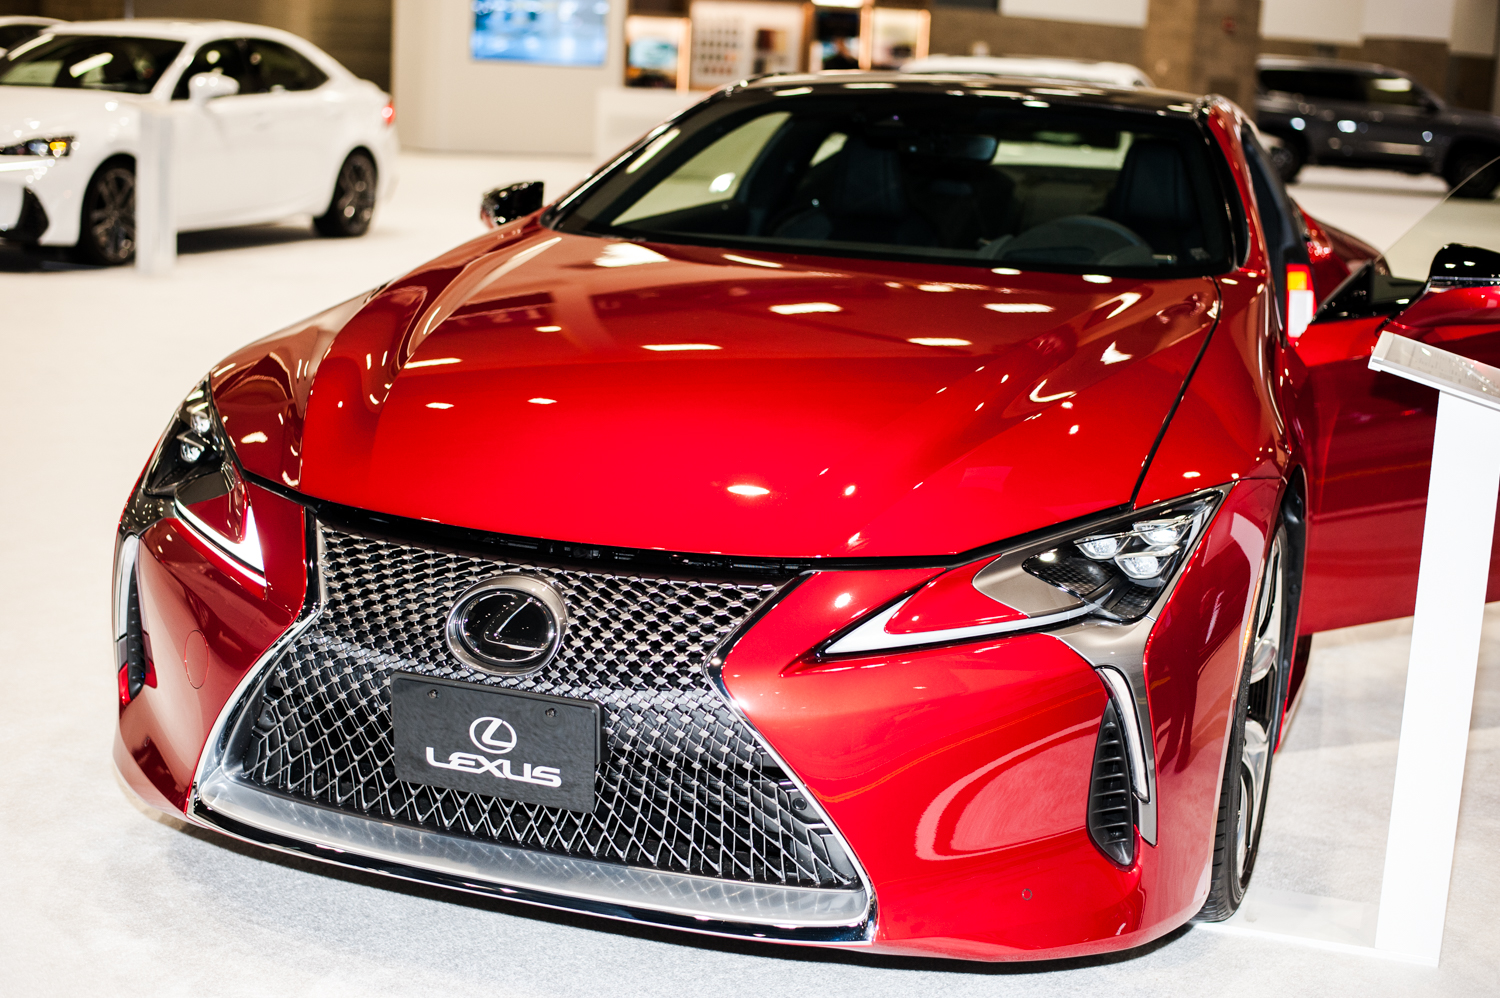 Lexus LC 500 - $92,000+. The Seattle International Auto Show{ }showcases all that's new in cars, trucks, exotics, super cars, electrics and all the latest models from the world's automobile makers. We scoured the place for the most expensive vehicles we could find - and aye caramba - some of these are literally the cars of our dreams. The Auto Show runs Nov. 9-12, 2018 at CenturyLink Field Event Center. (Image: Elizabeth Crook / Seattle Refined)